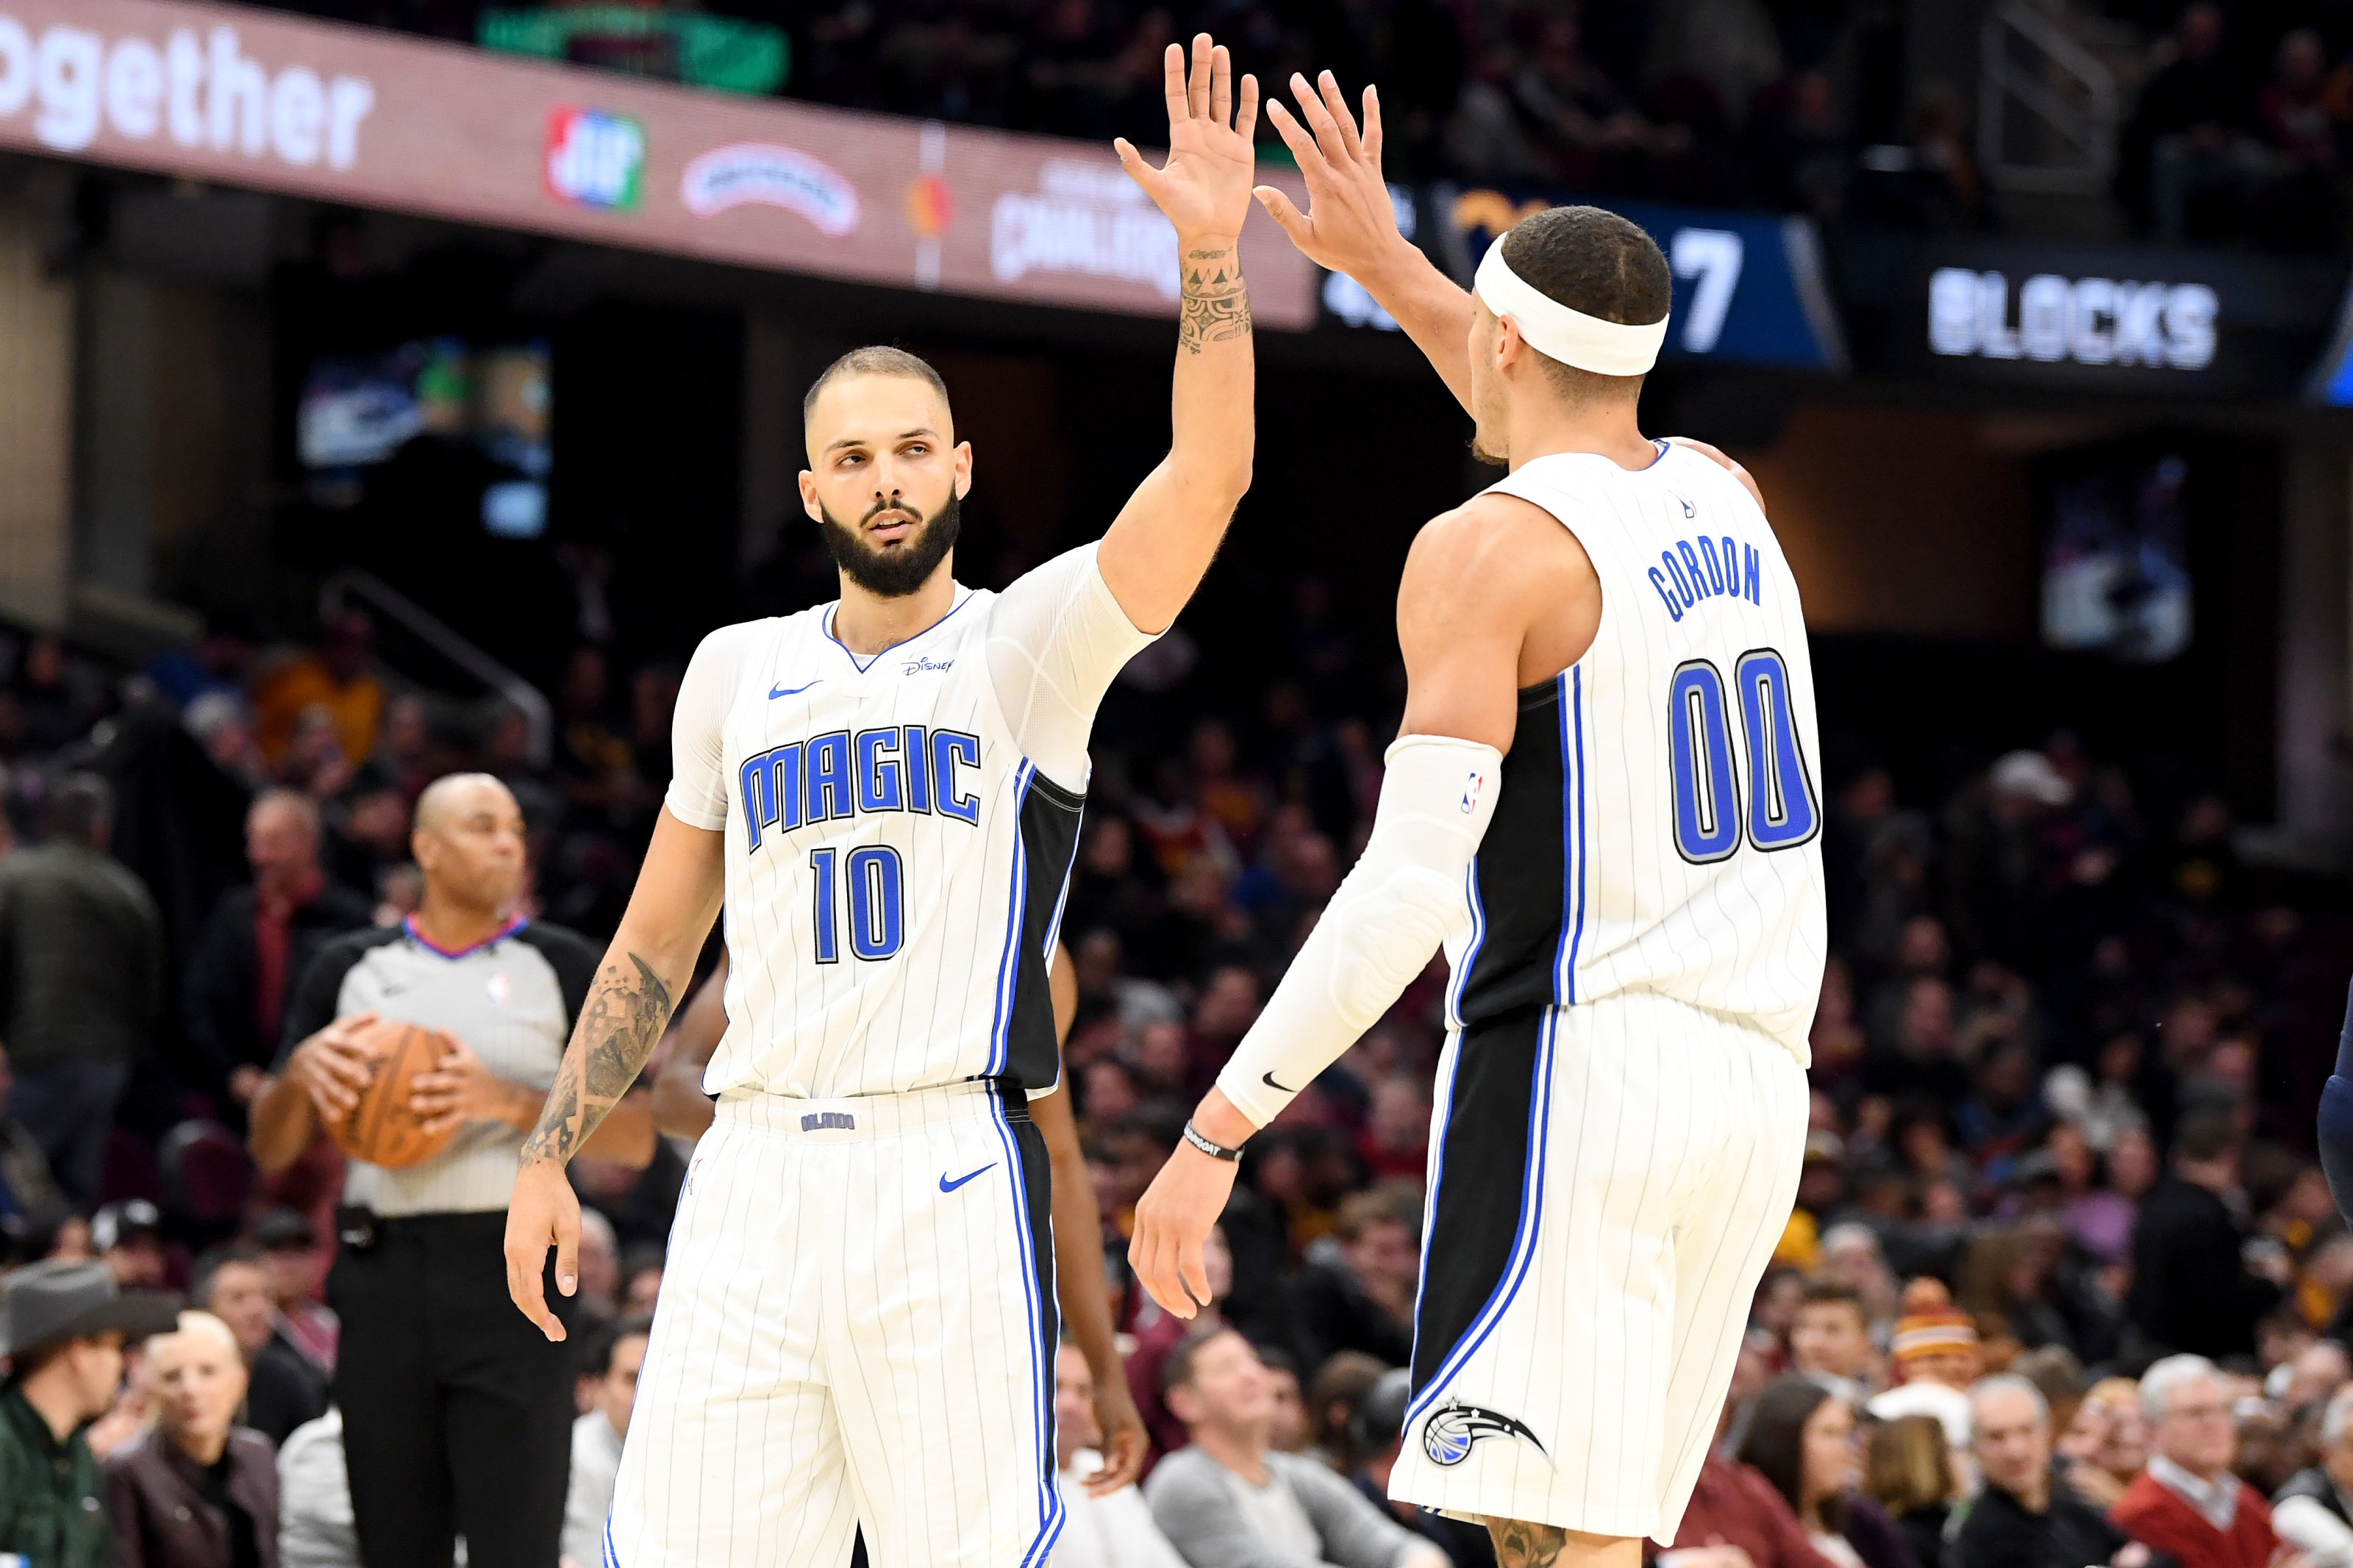 Orlando Magic must still play their way into the Playoffs